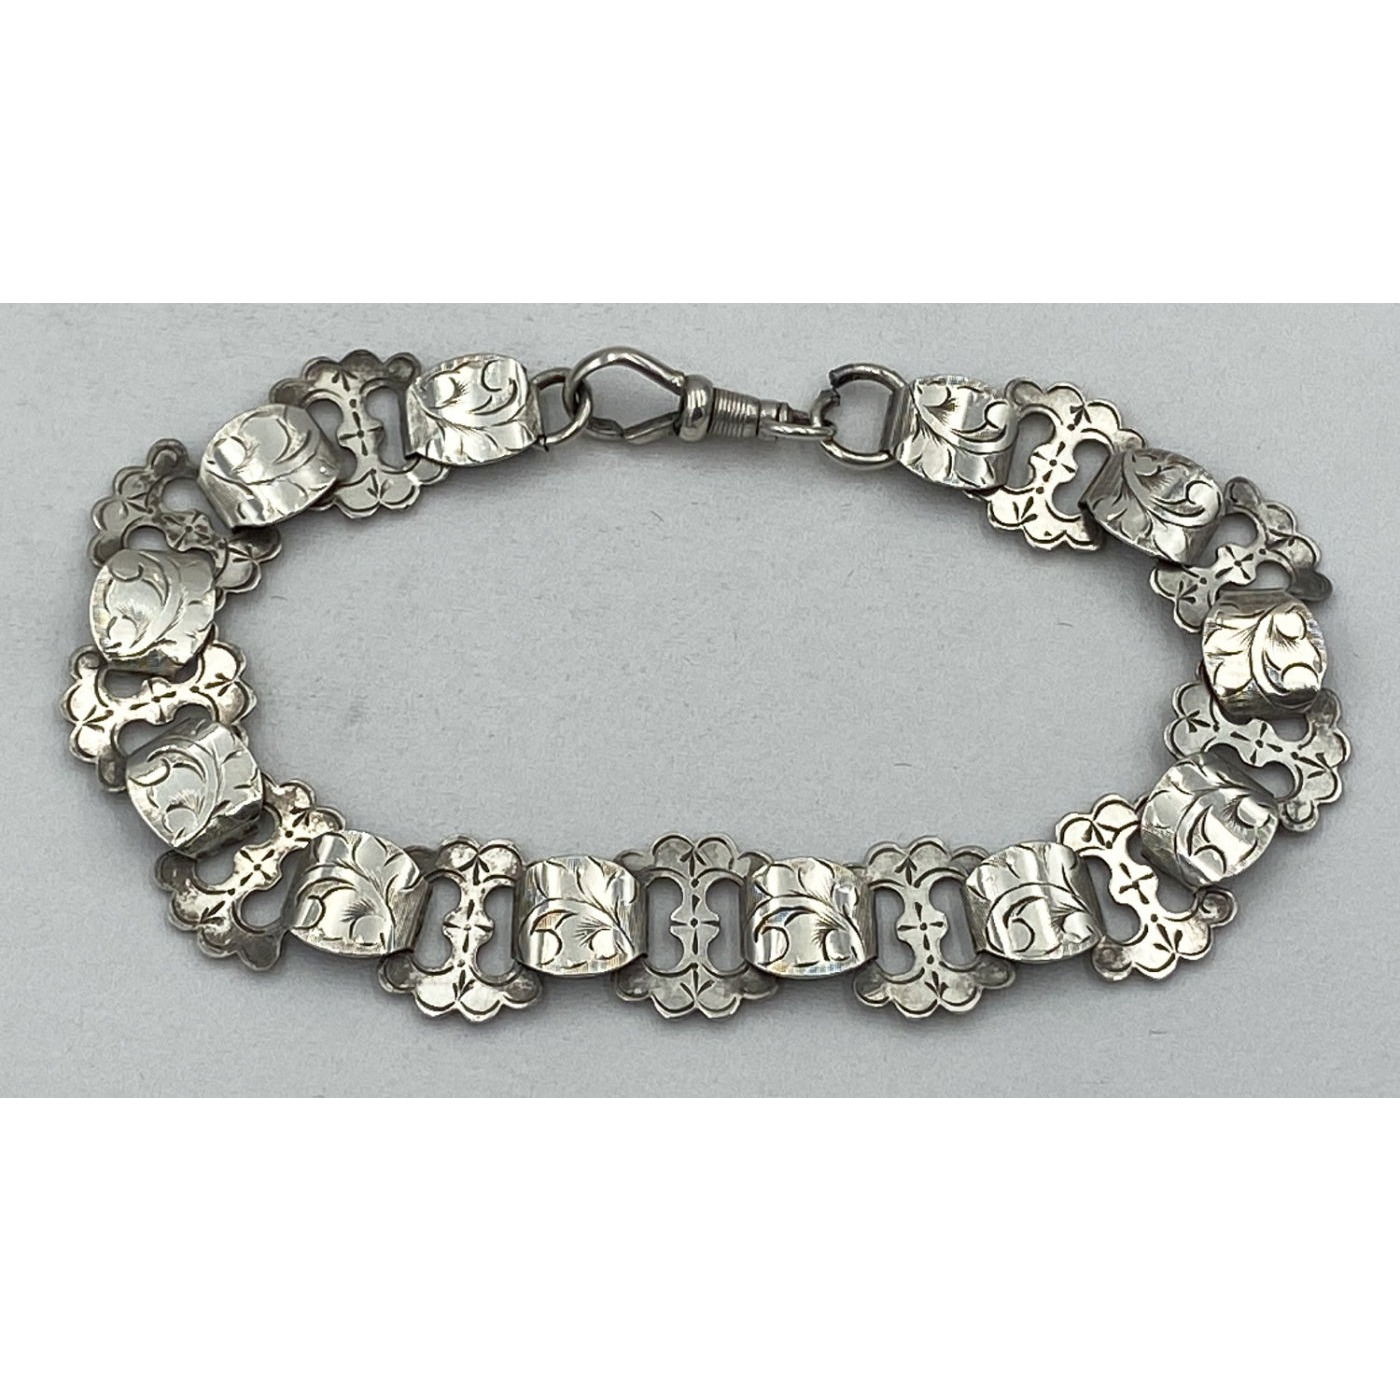 Exquisite Floral Engraved Victorian English Silver Link Bracelet